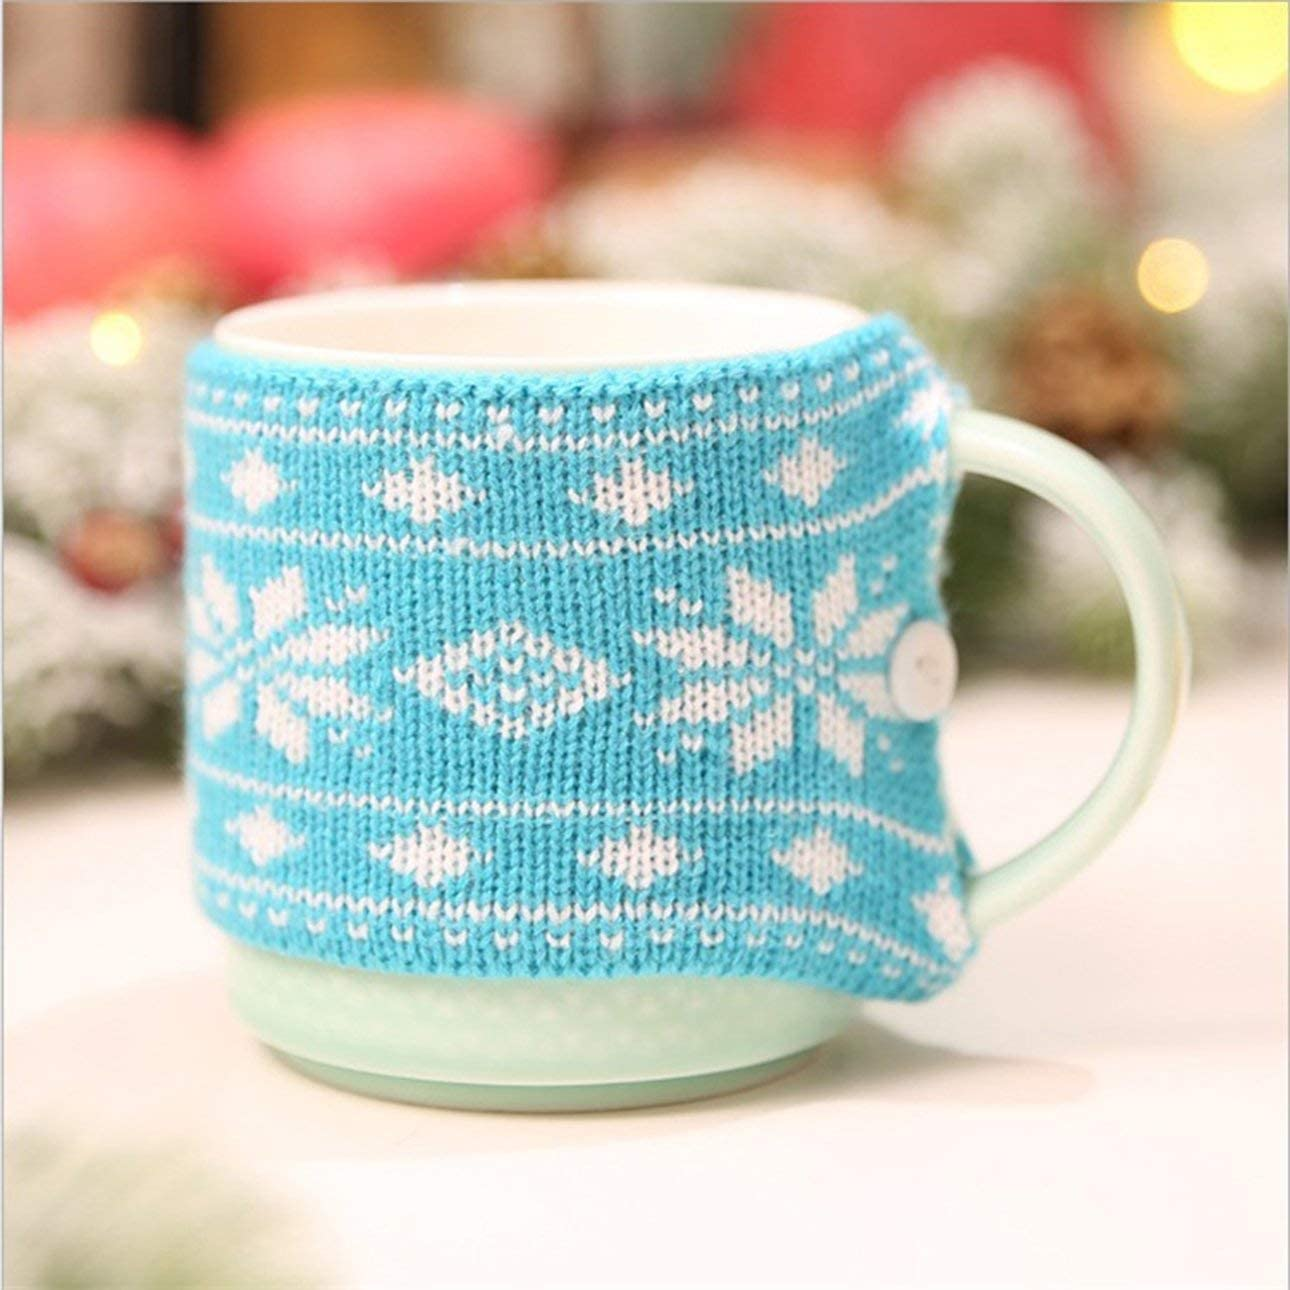 Liobaba Christmas Knitted Mug Warmer Sleeve Suitable for Christmas Party,Festival Decoration